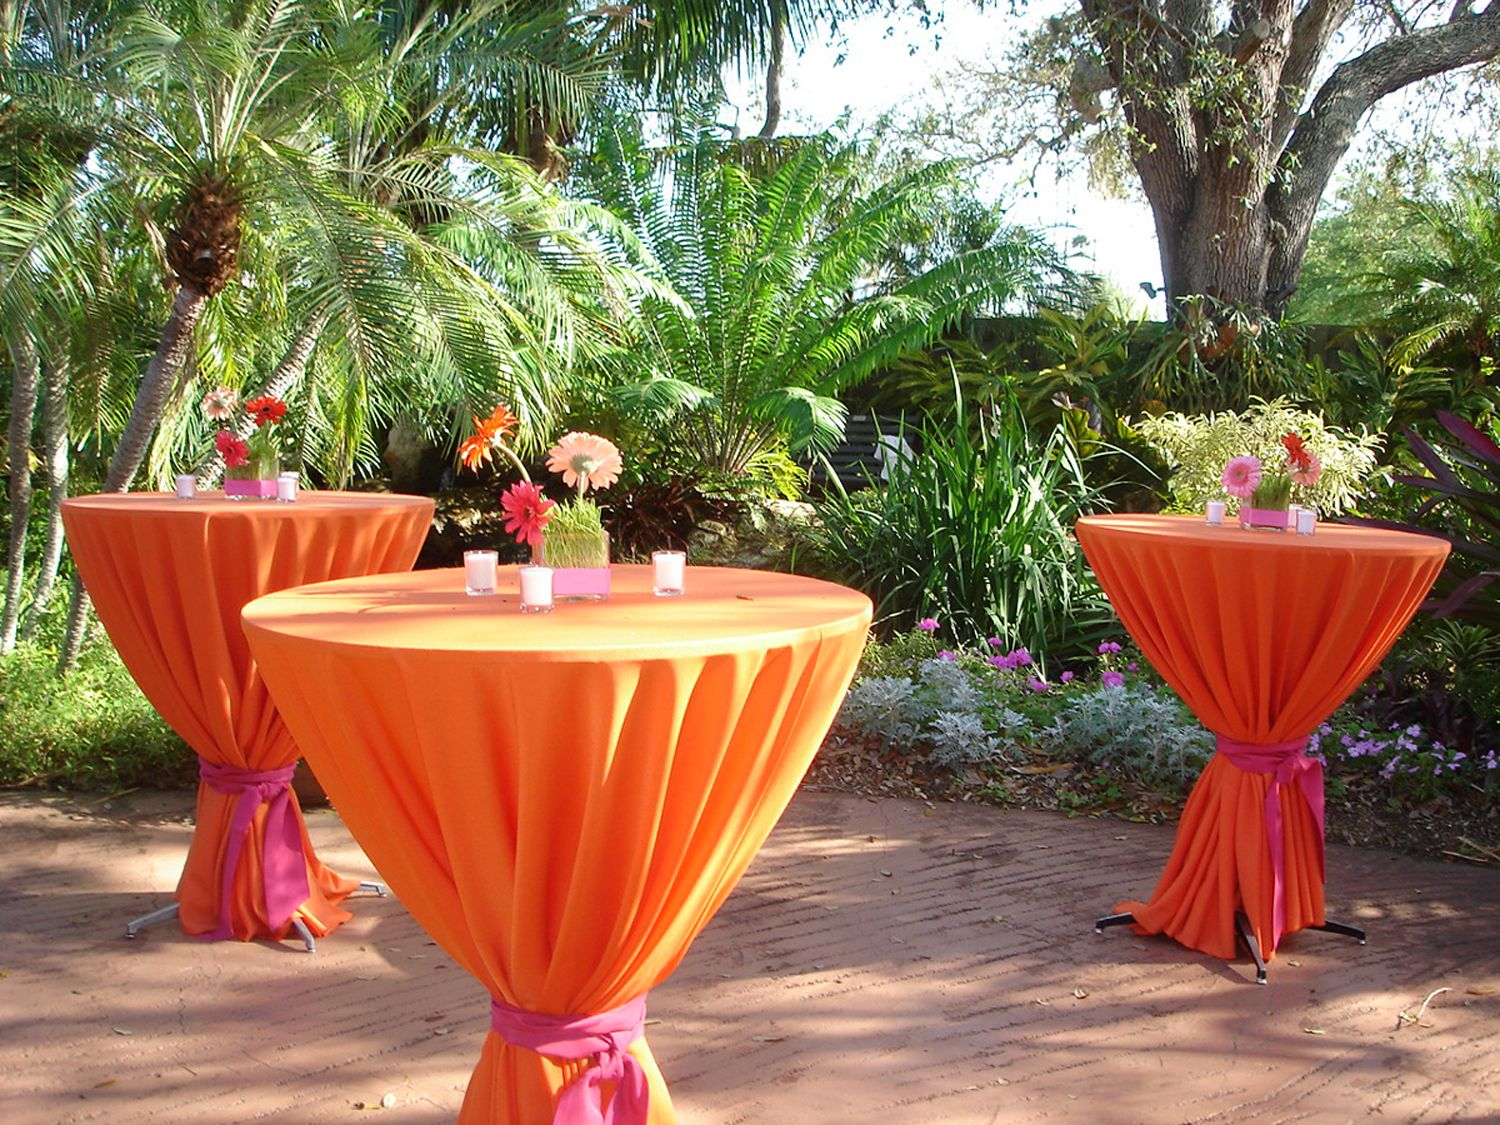 Cocktail Party Decorations Ideas Part - 36: Outdoor Backyard Summer Party | Sarasota Garden Club-Wedding And Cocktail  Party Reception U2013 Flowers